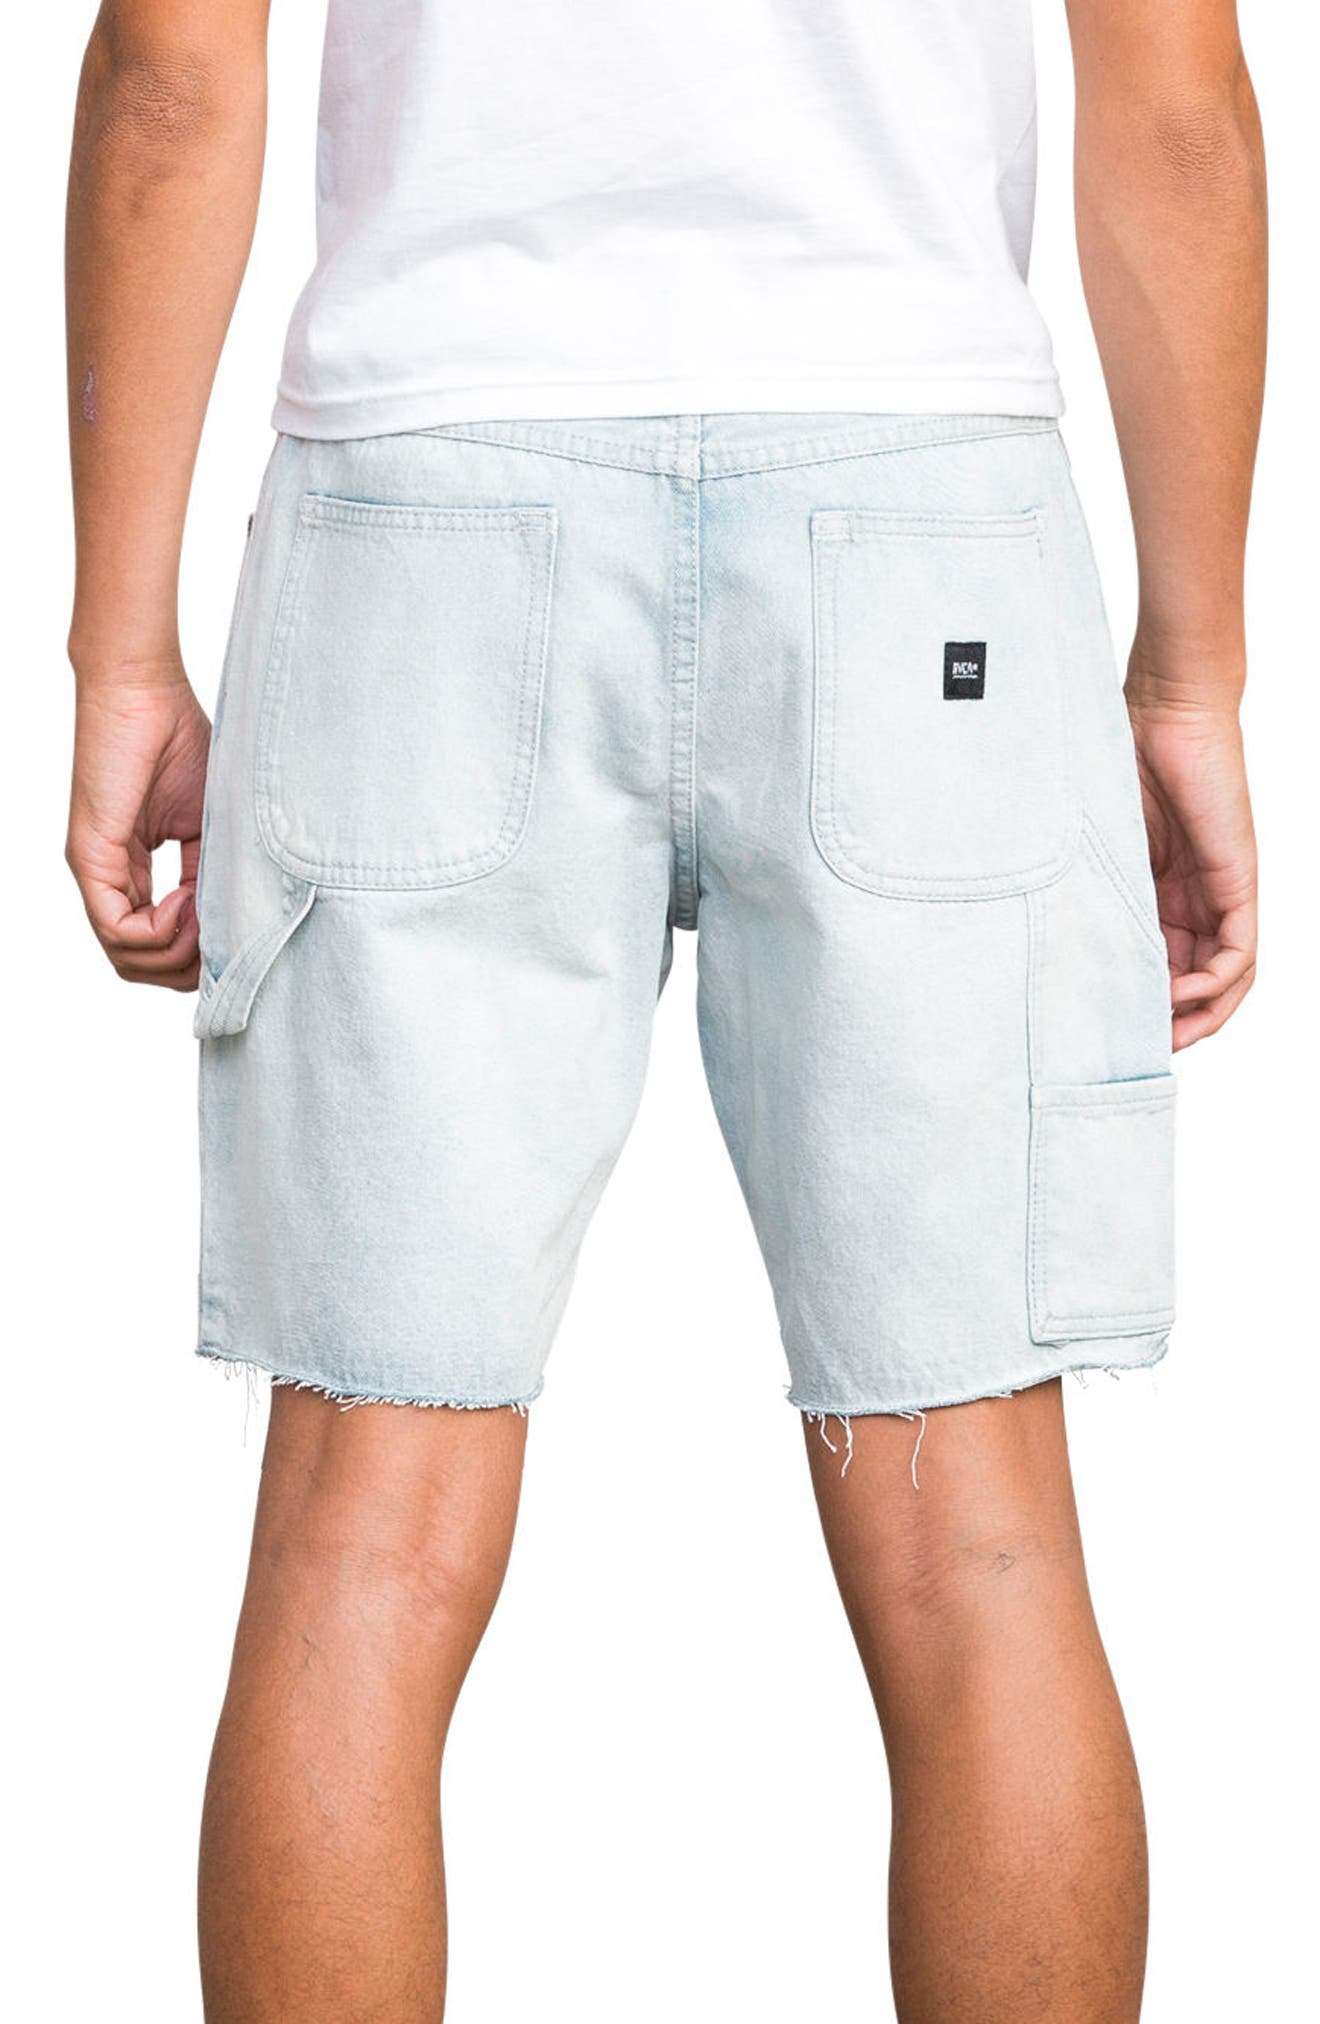 Work It Denim Shorts,                             Alternate thumbnail 2, color,                             401